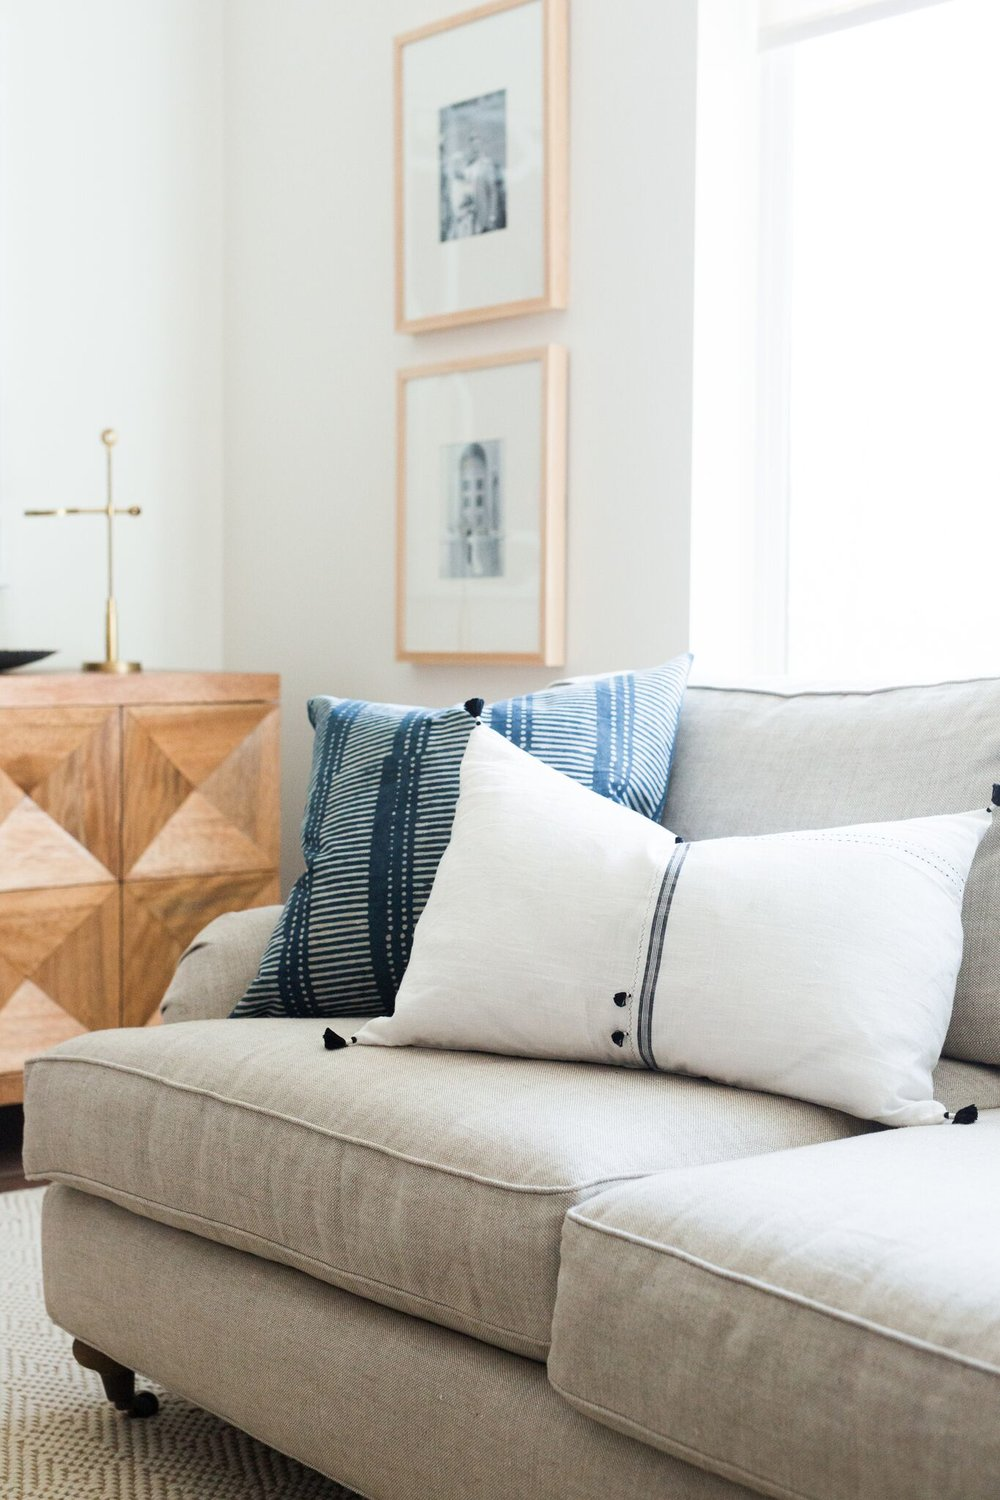 White couch with two decorative pillows